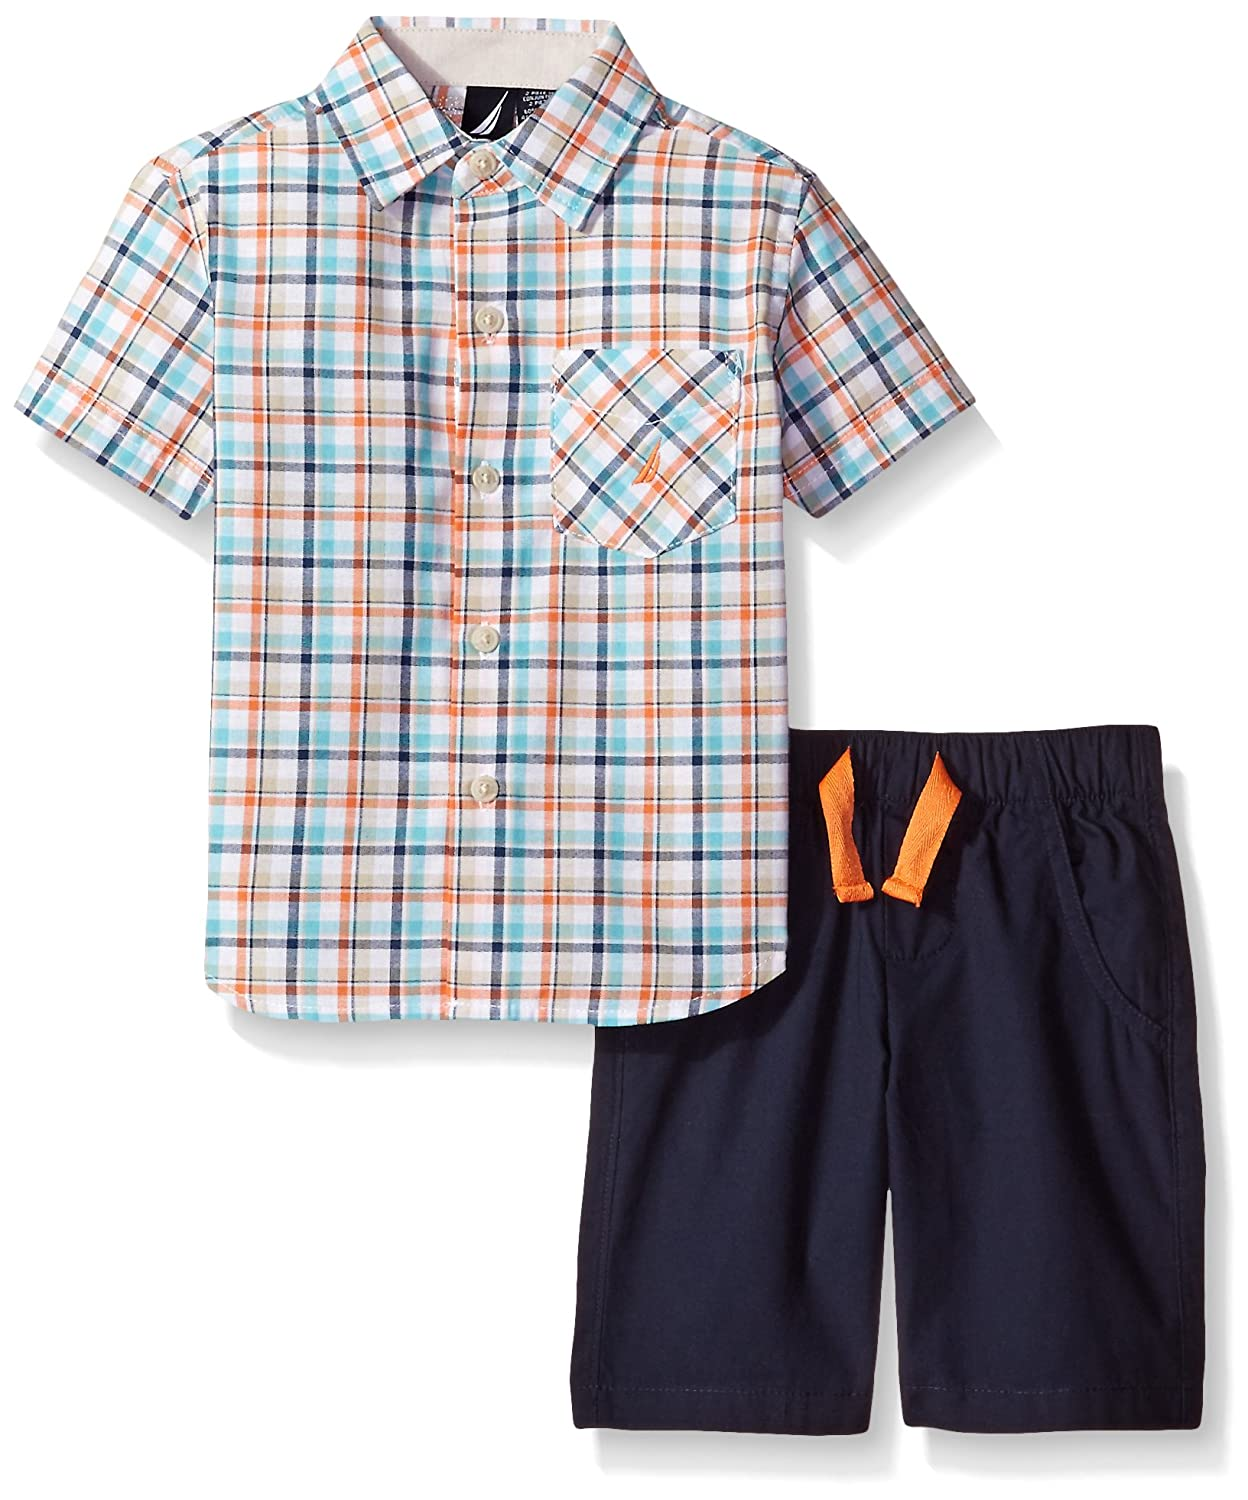 Nautica Little Boys' Two Piece Short Sleeve Plaid Shirt with Pull On Shorts 30C10Q